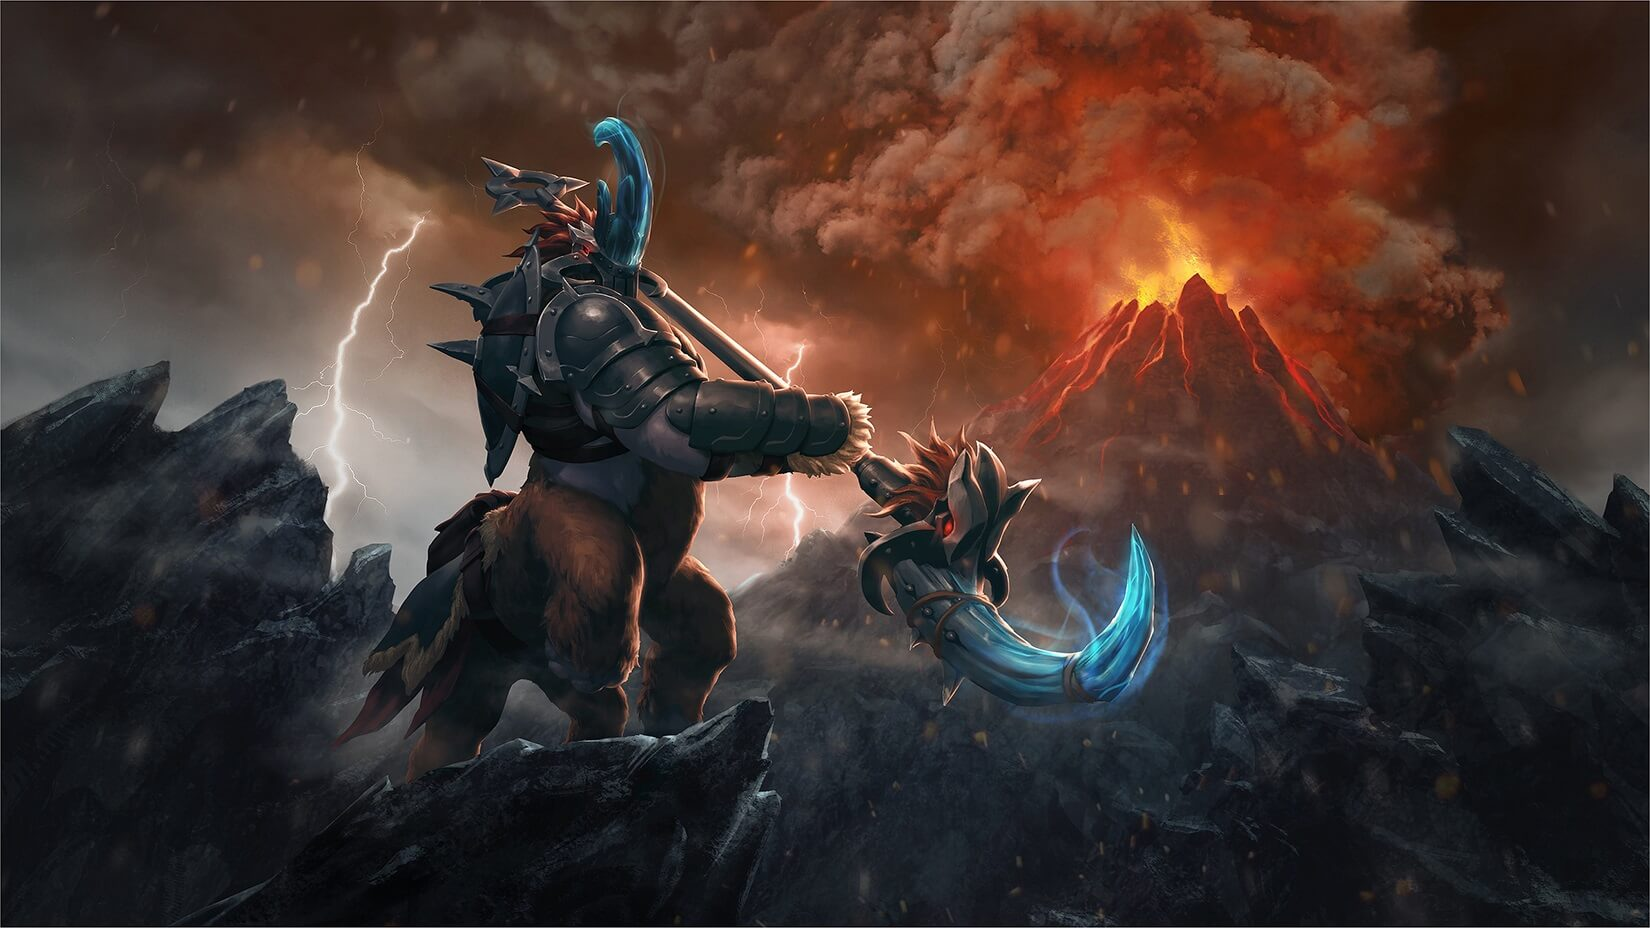 Might of the Galloping Avenger loading screen for Magnus - Valve